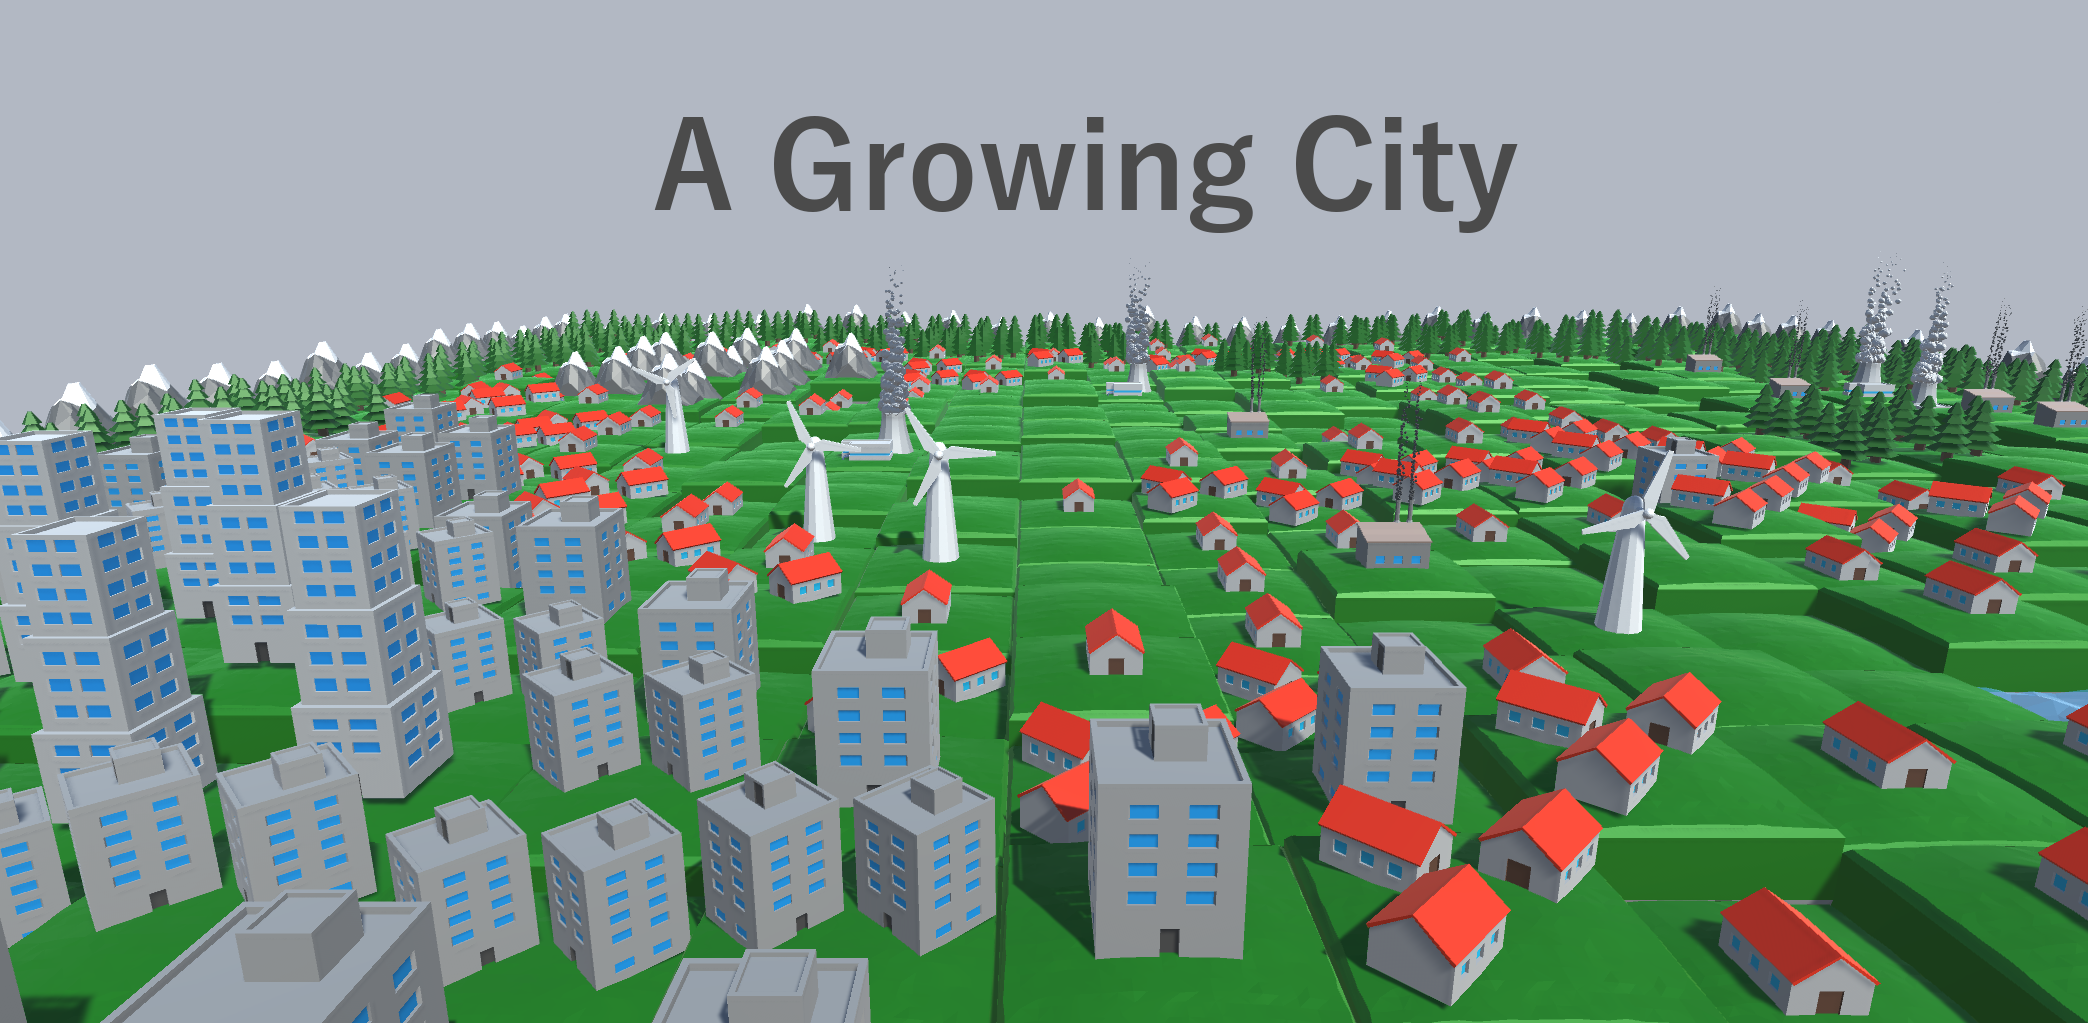 A Growing City